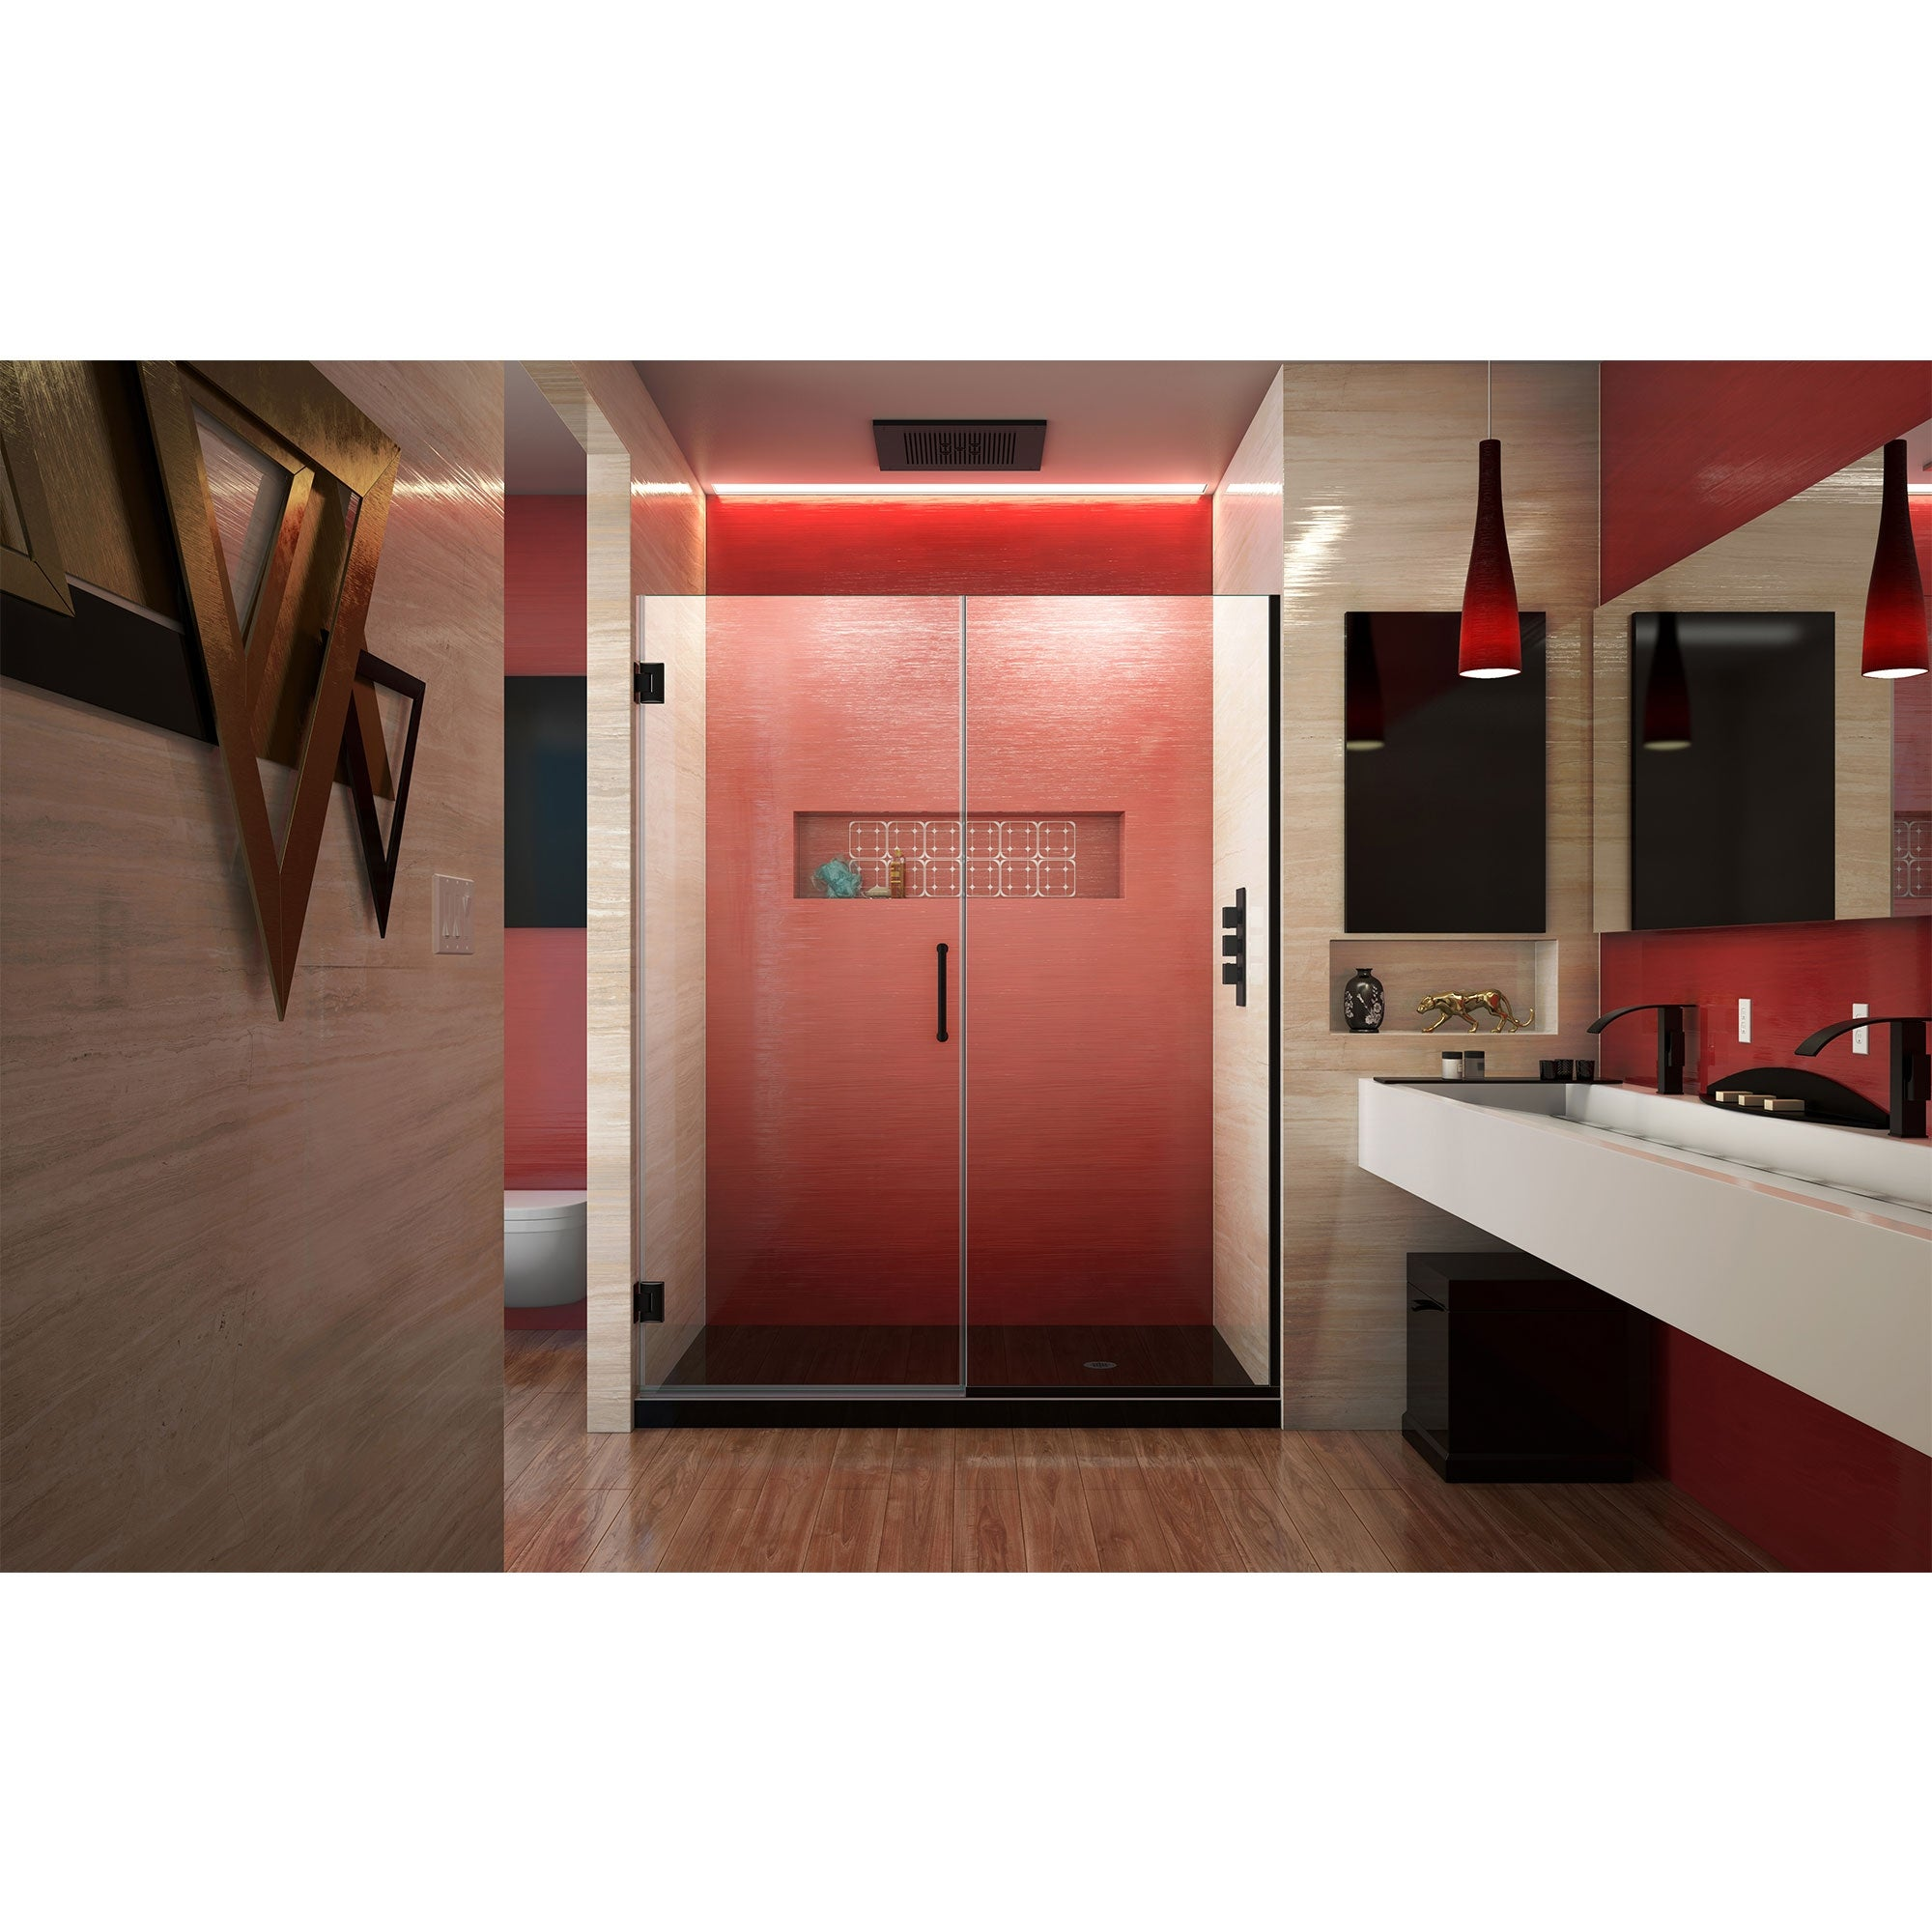 Dreamline Unidoor Plus 58 58 1 2 In W X 72 In H Frameless Hinged Shower Door 58 58 5 W 58 58 5 W Overstock 9128846